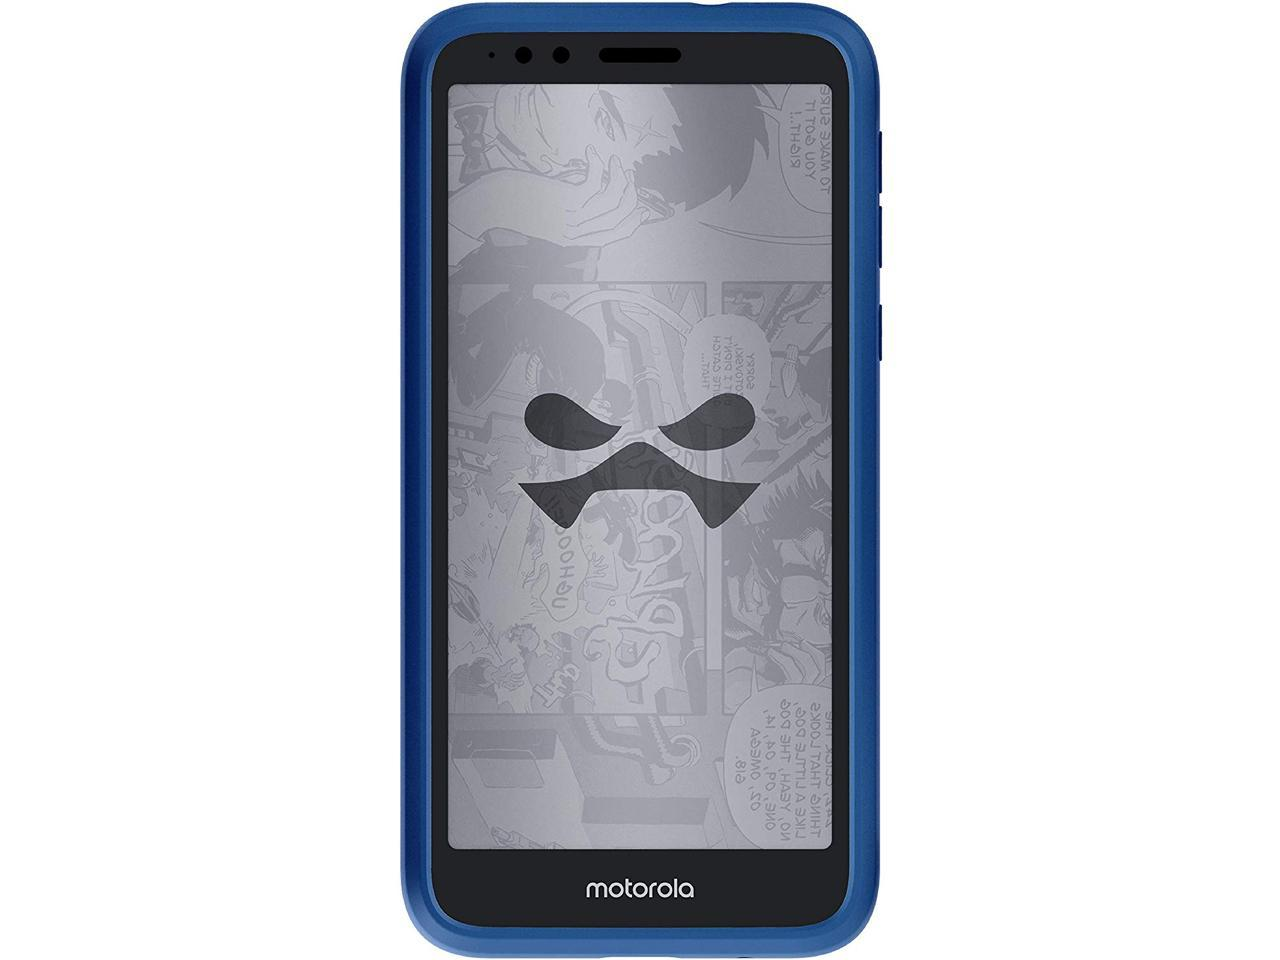 1 set iPhone 44s mustache cell phone skin front and back piece